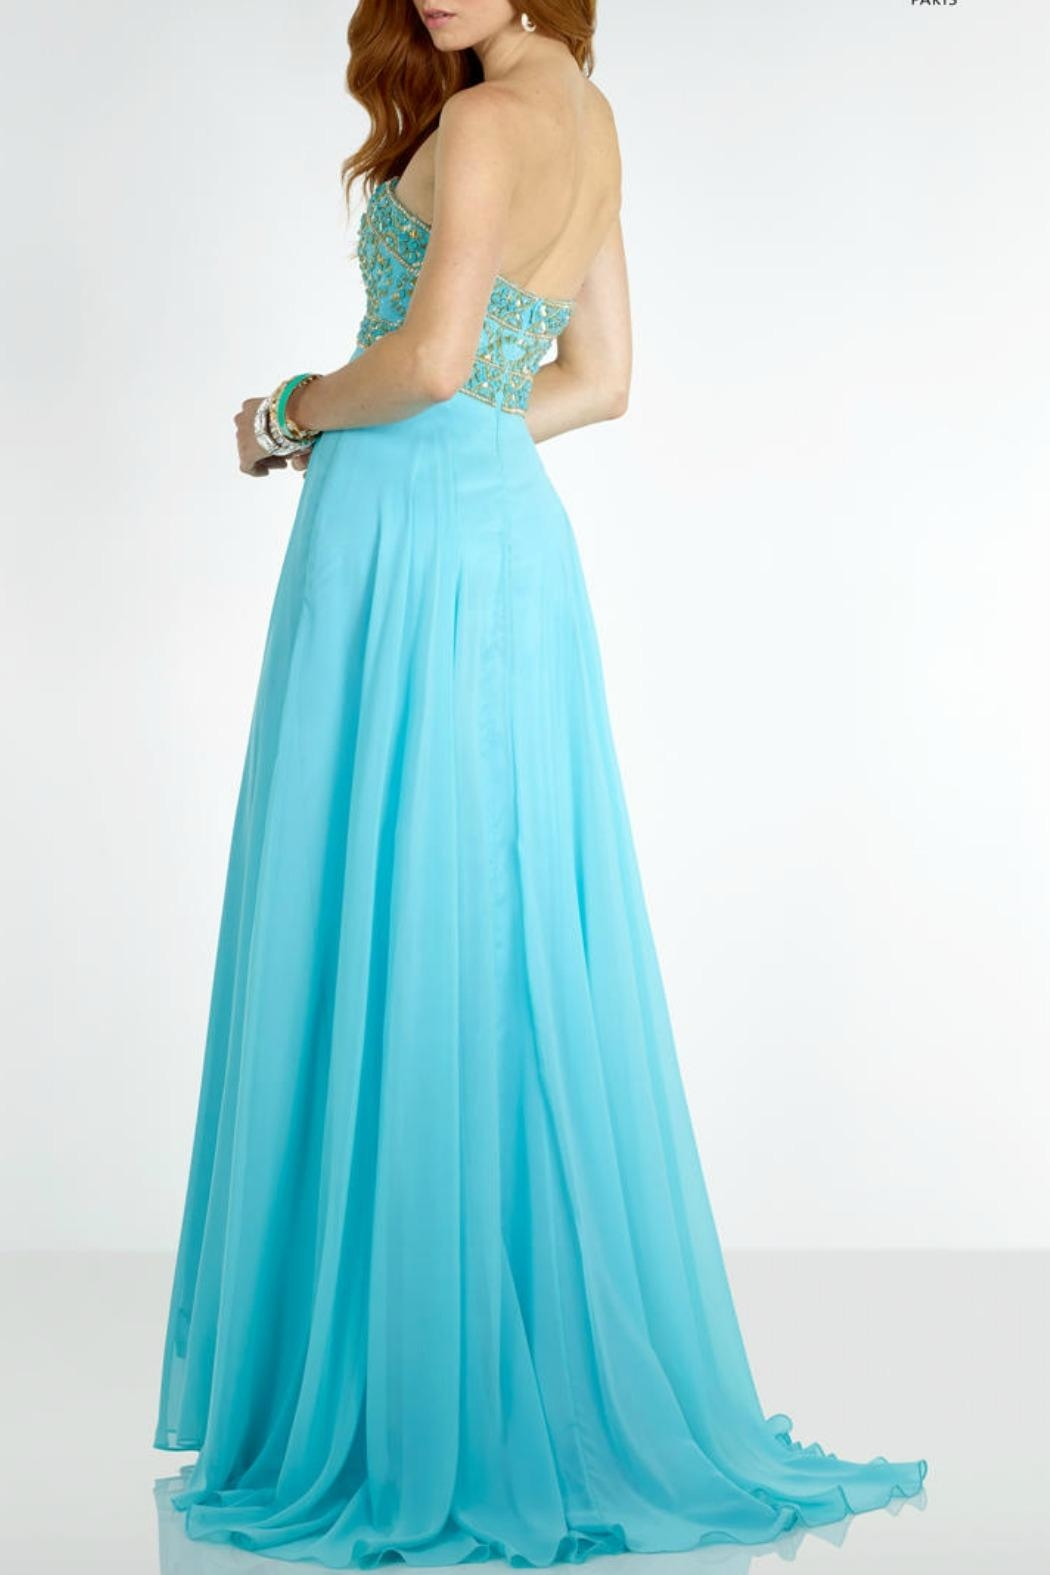 Alyce Paris Light Turquoise Gown - Front Full Image